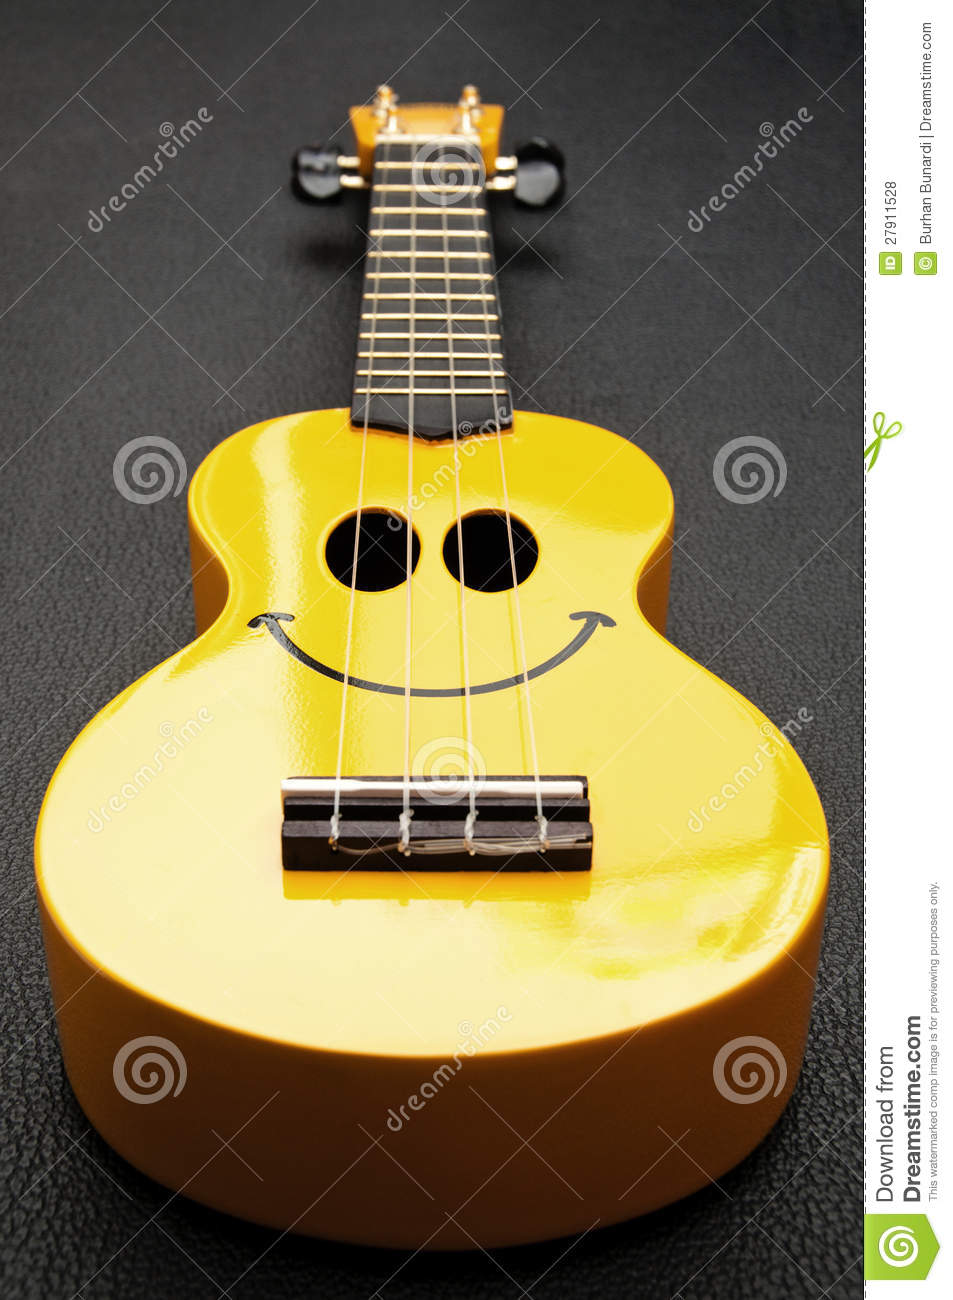 Smiley Ukulele Royalty Free Stock Photos Image 27911528